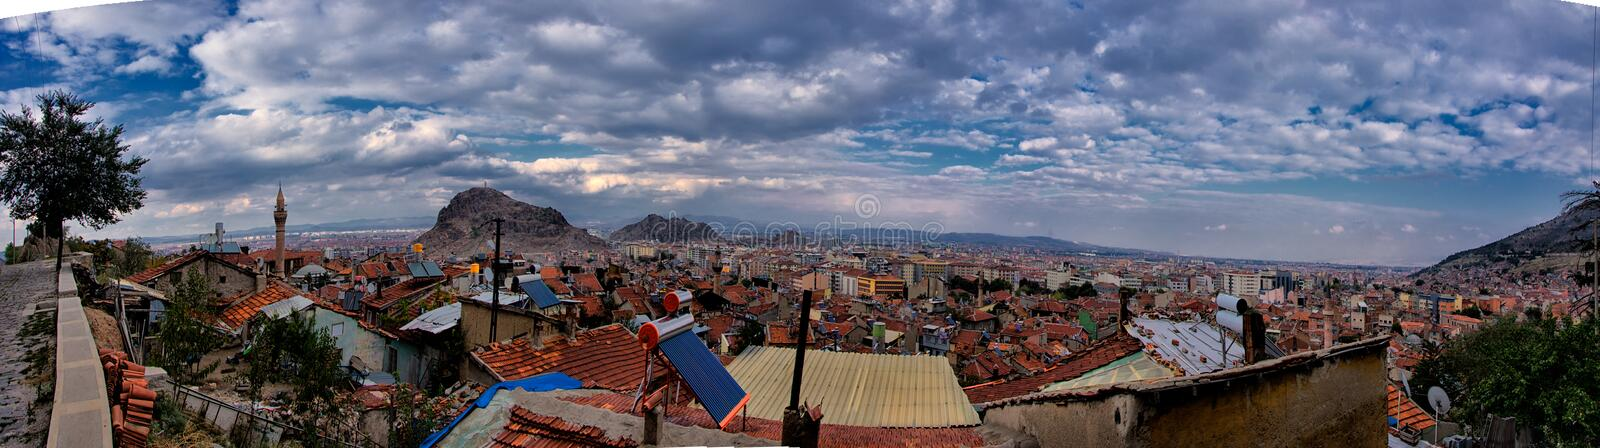 Panoramic view of the city Afyonkarahisar stock photography